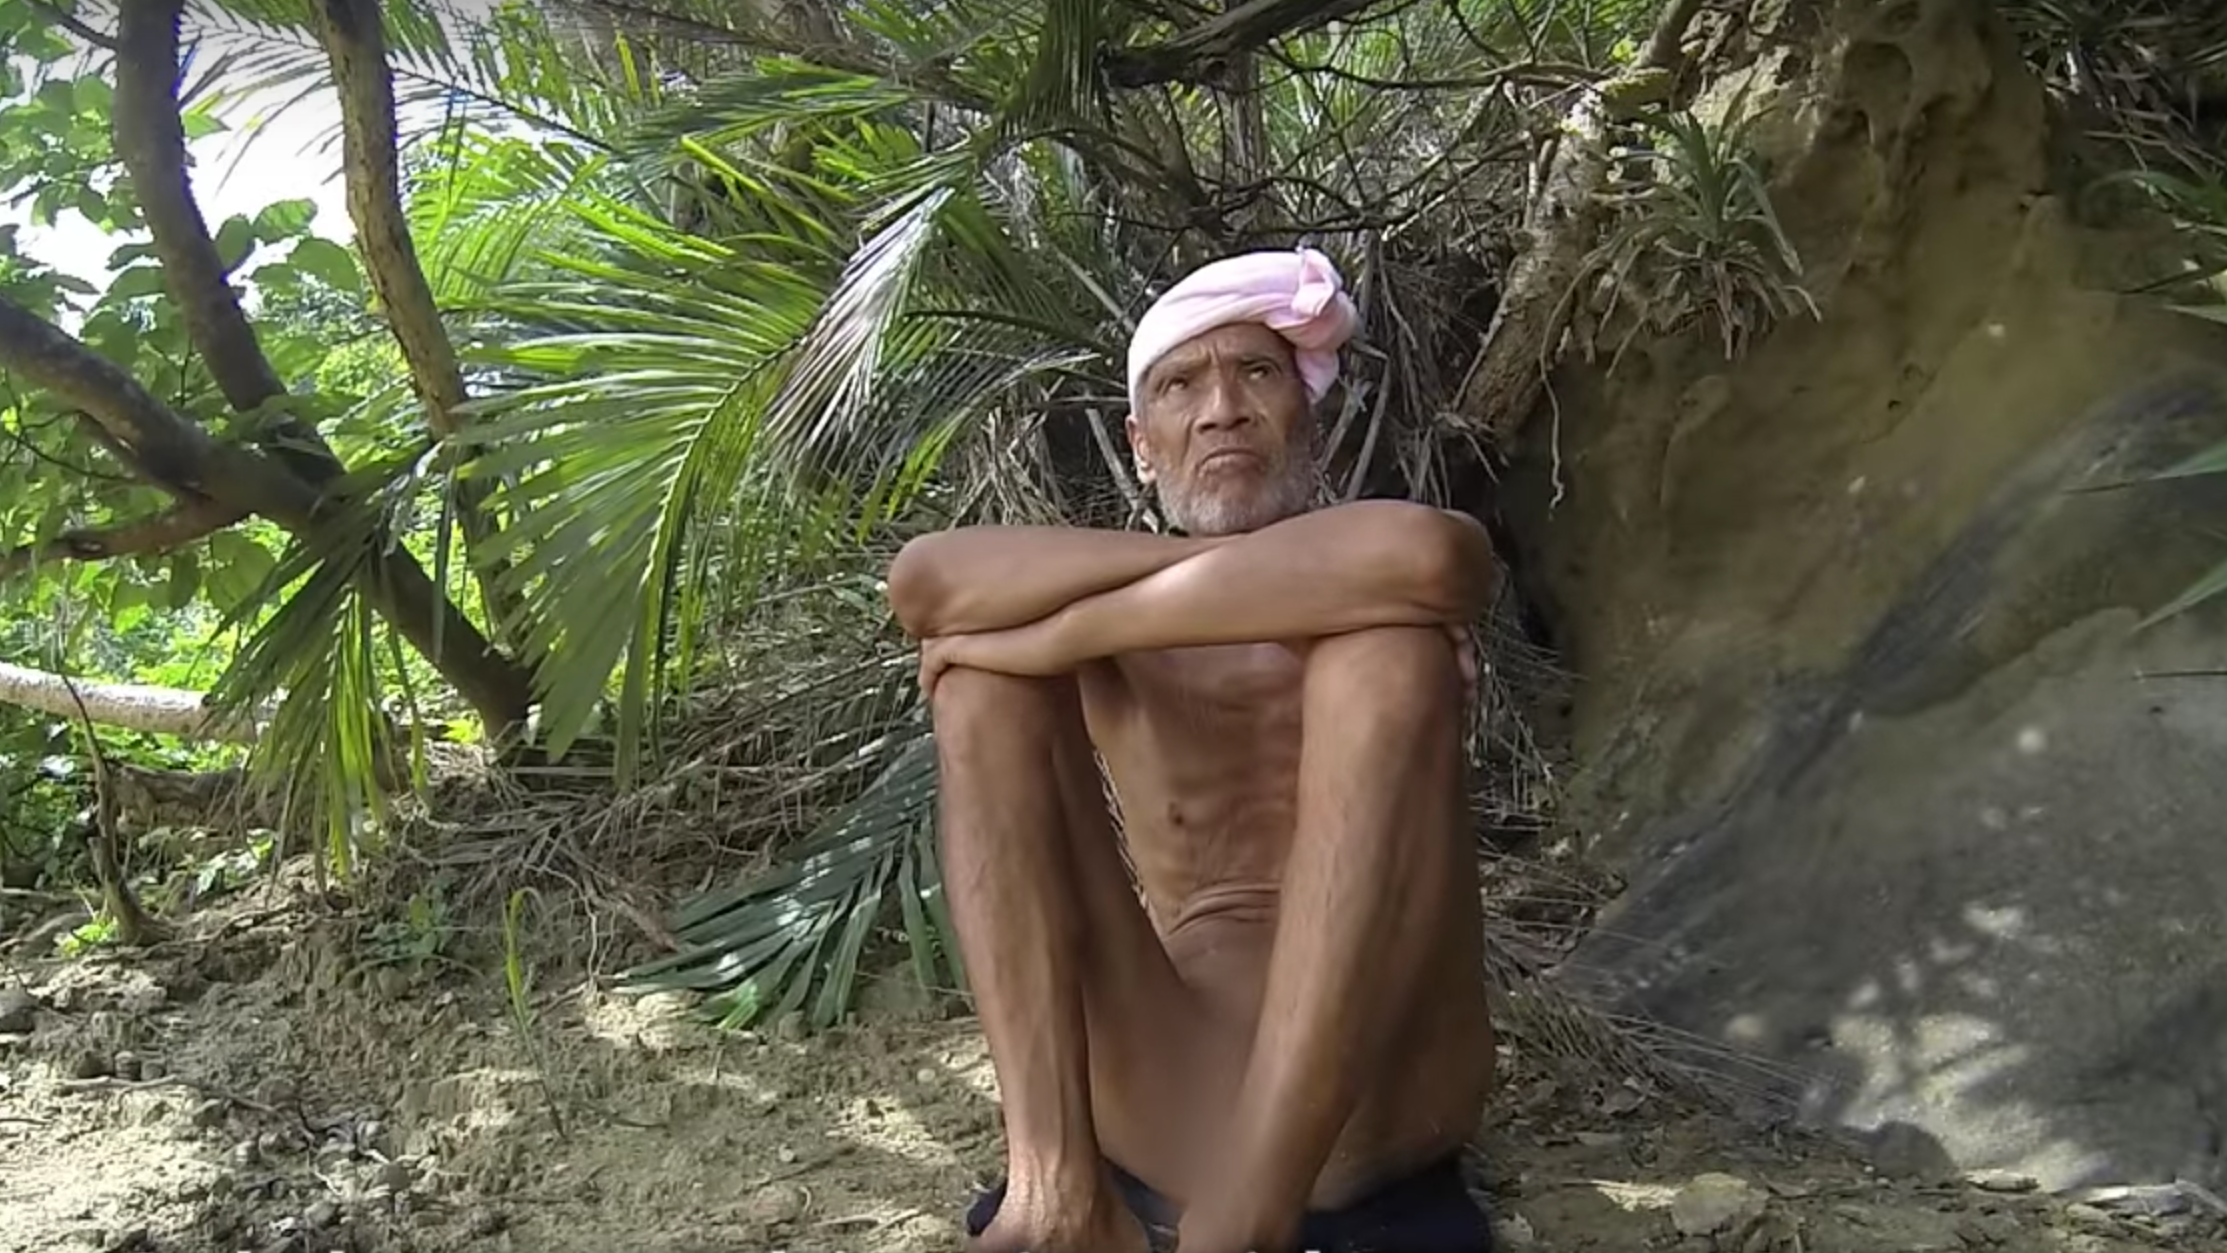 Japan's 'Naked Hermit' Pried From Island Utopia After 29 Years